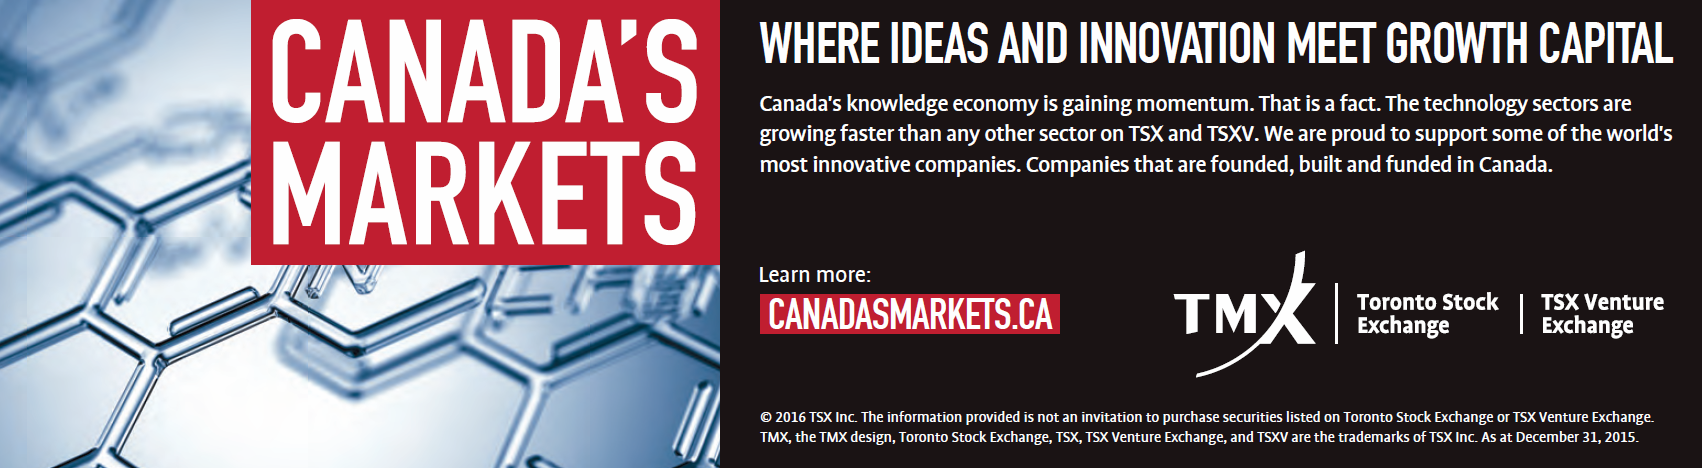 Tmx newsroom we are canadas markets poster 3 biocorpaavc Images